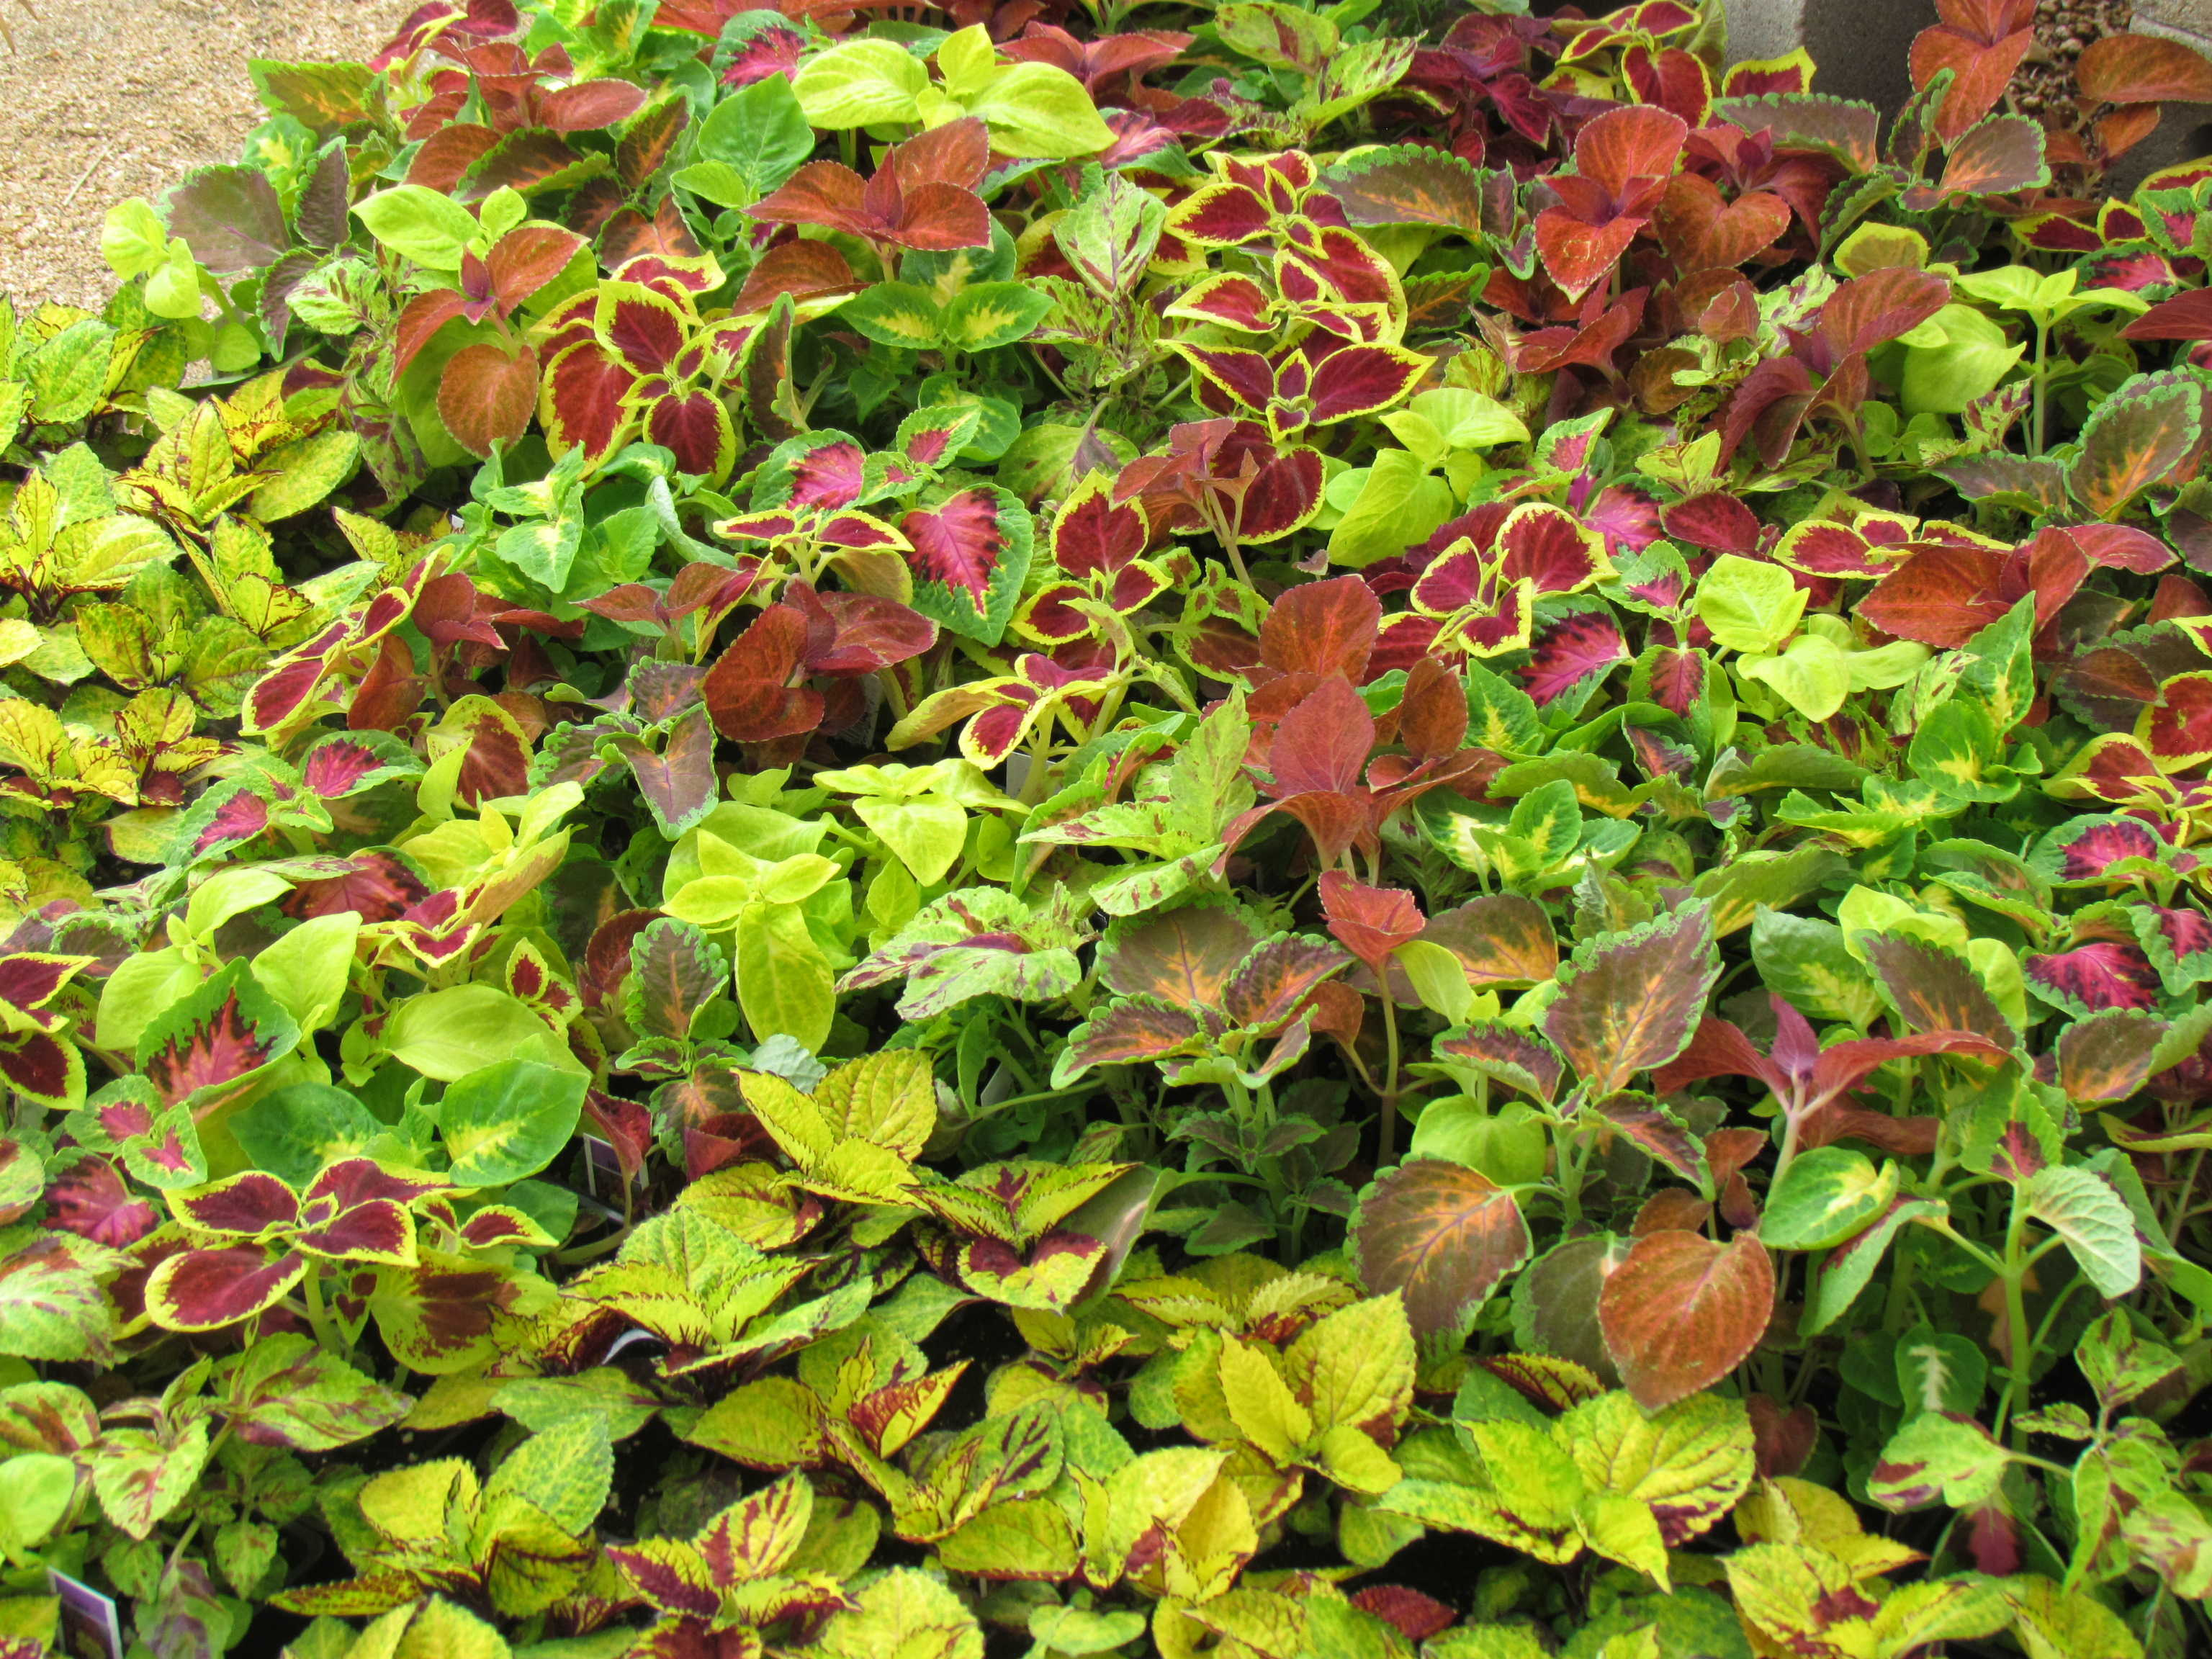 Large variety of ground cover such as this Coleus and more at J&J Nursery, Spring, TX